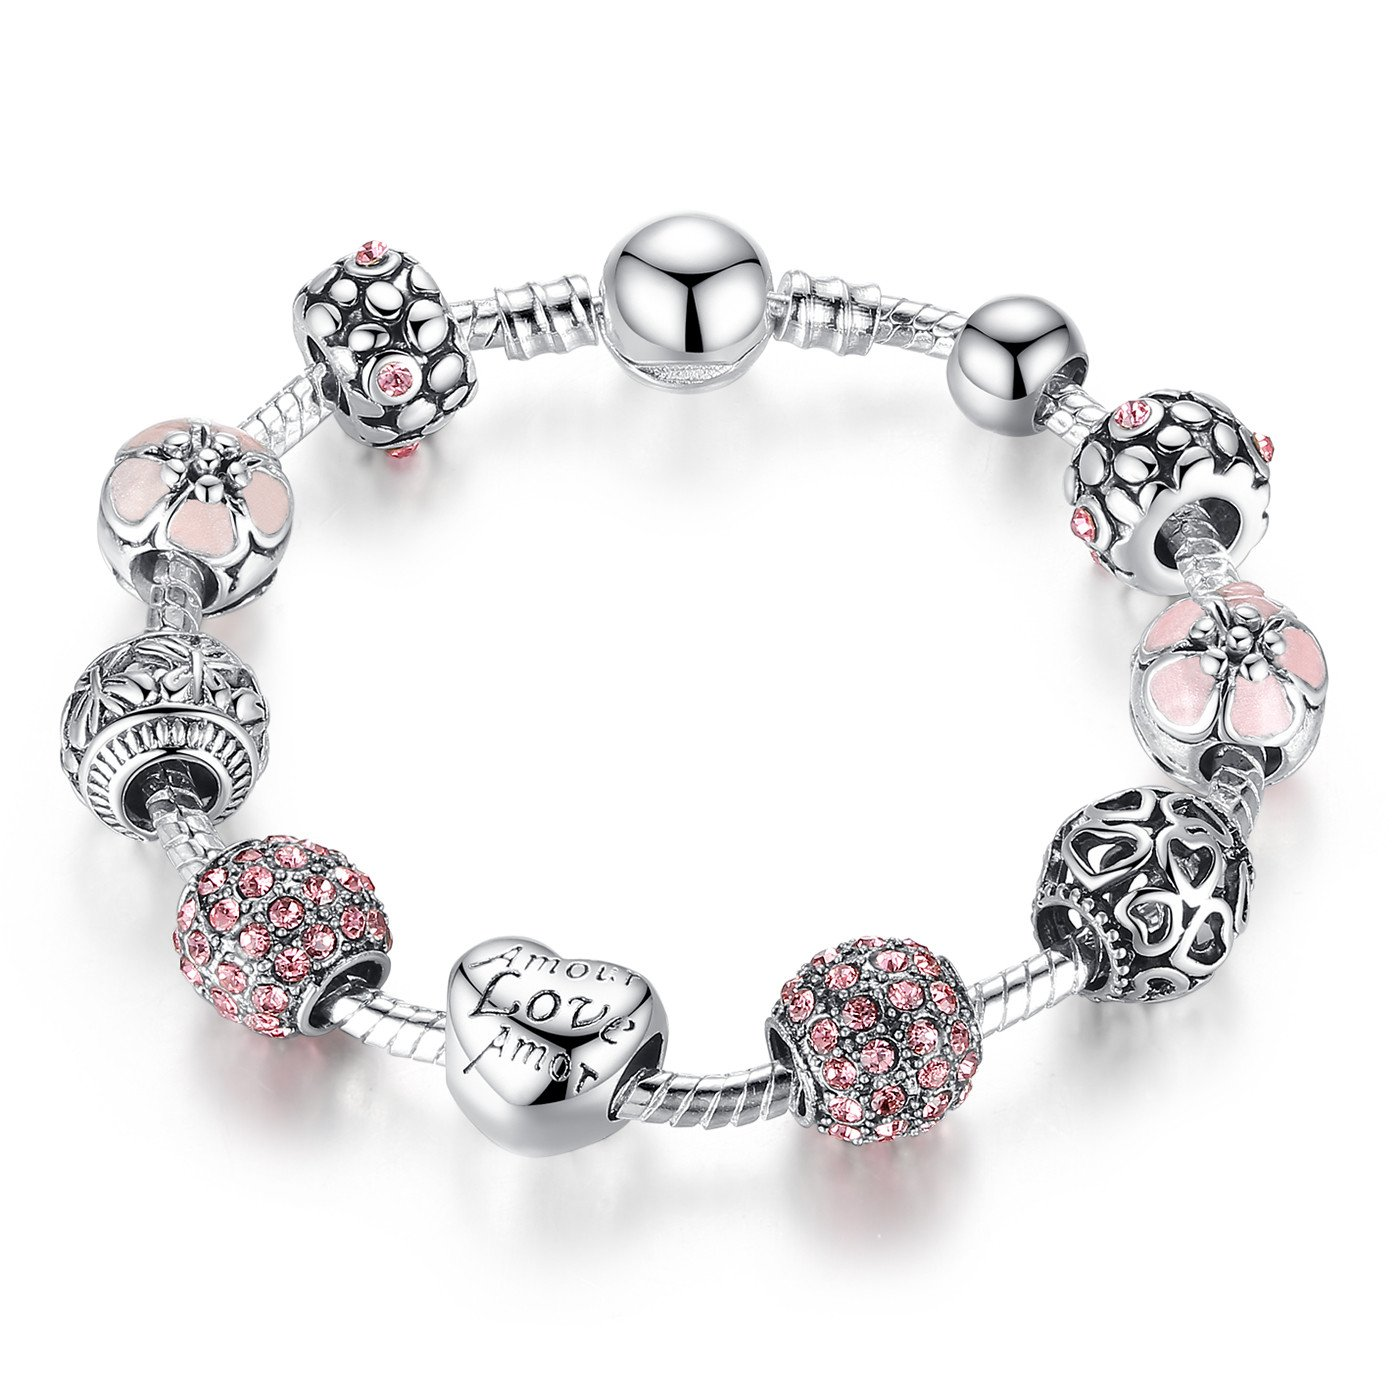 JOEMOD Heart of the Love Pink Charm Bracelet for Women Girls Fashion Jewelry Mothers Day Gift